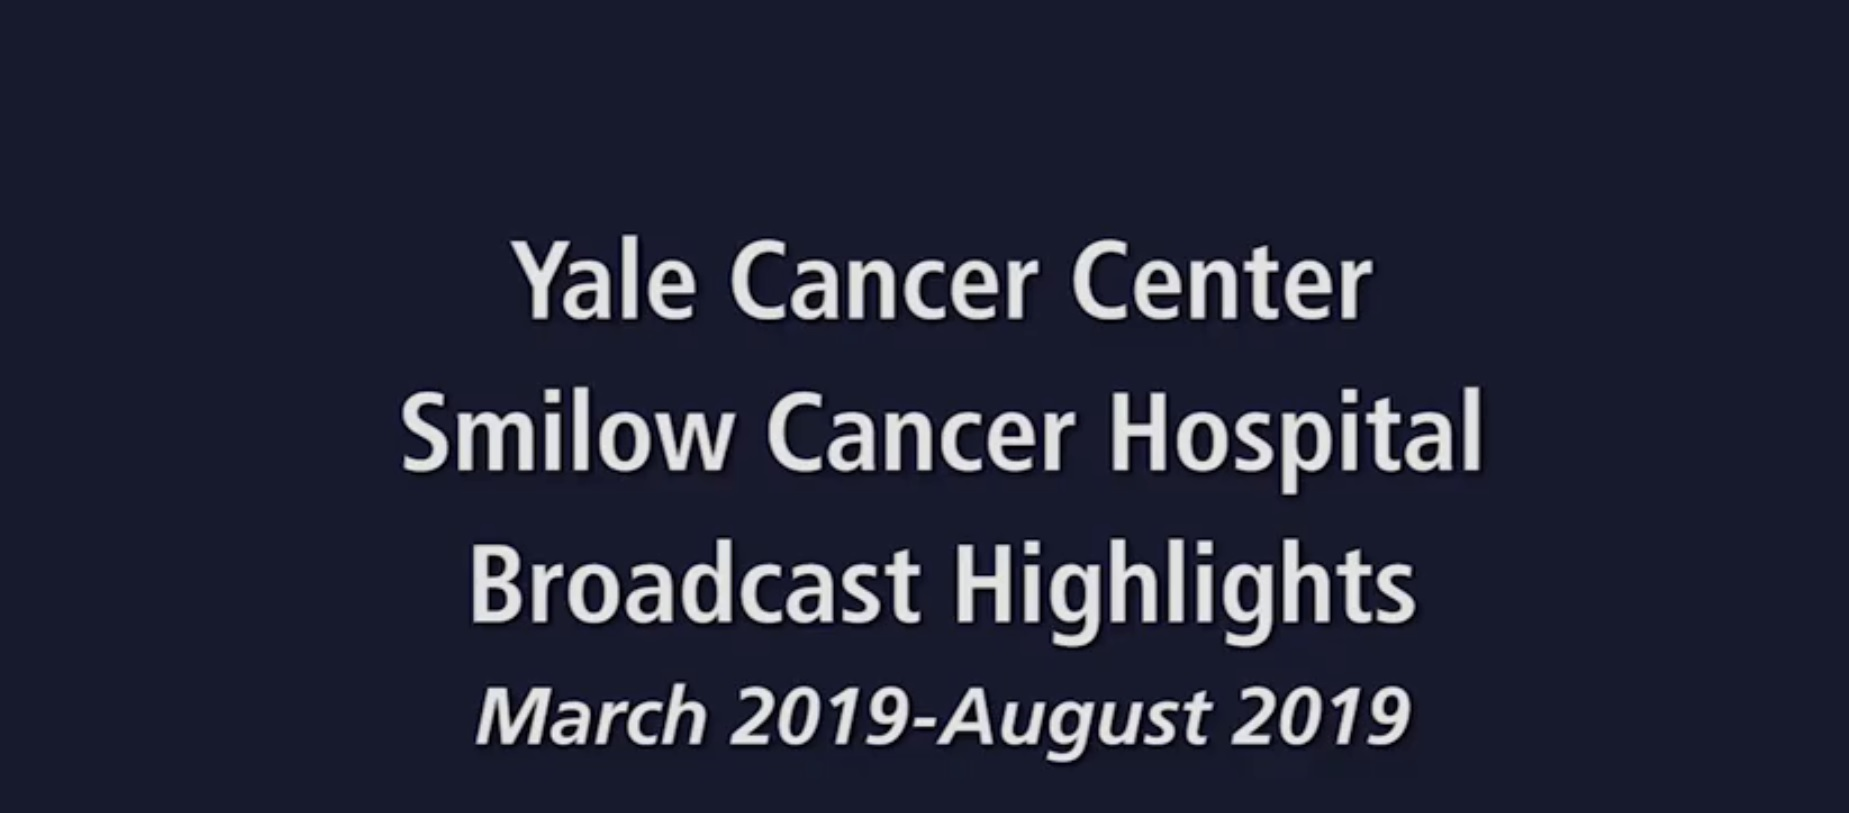 Yale Cancer Center Broadcast Highlights